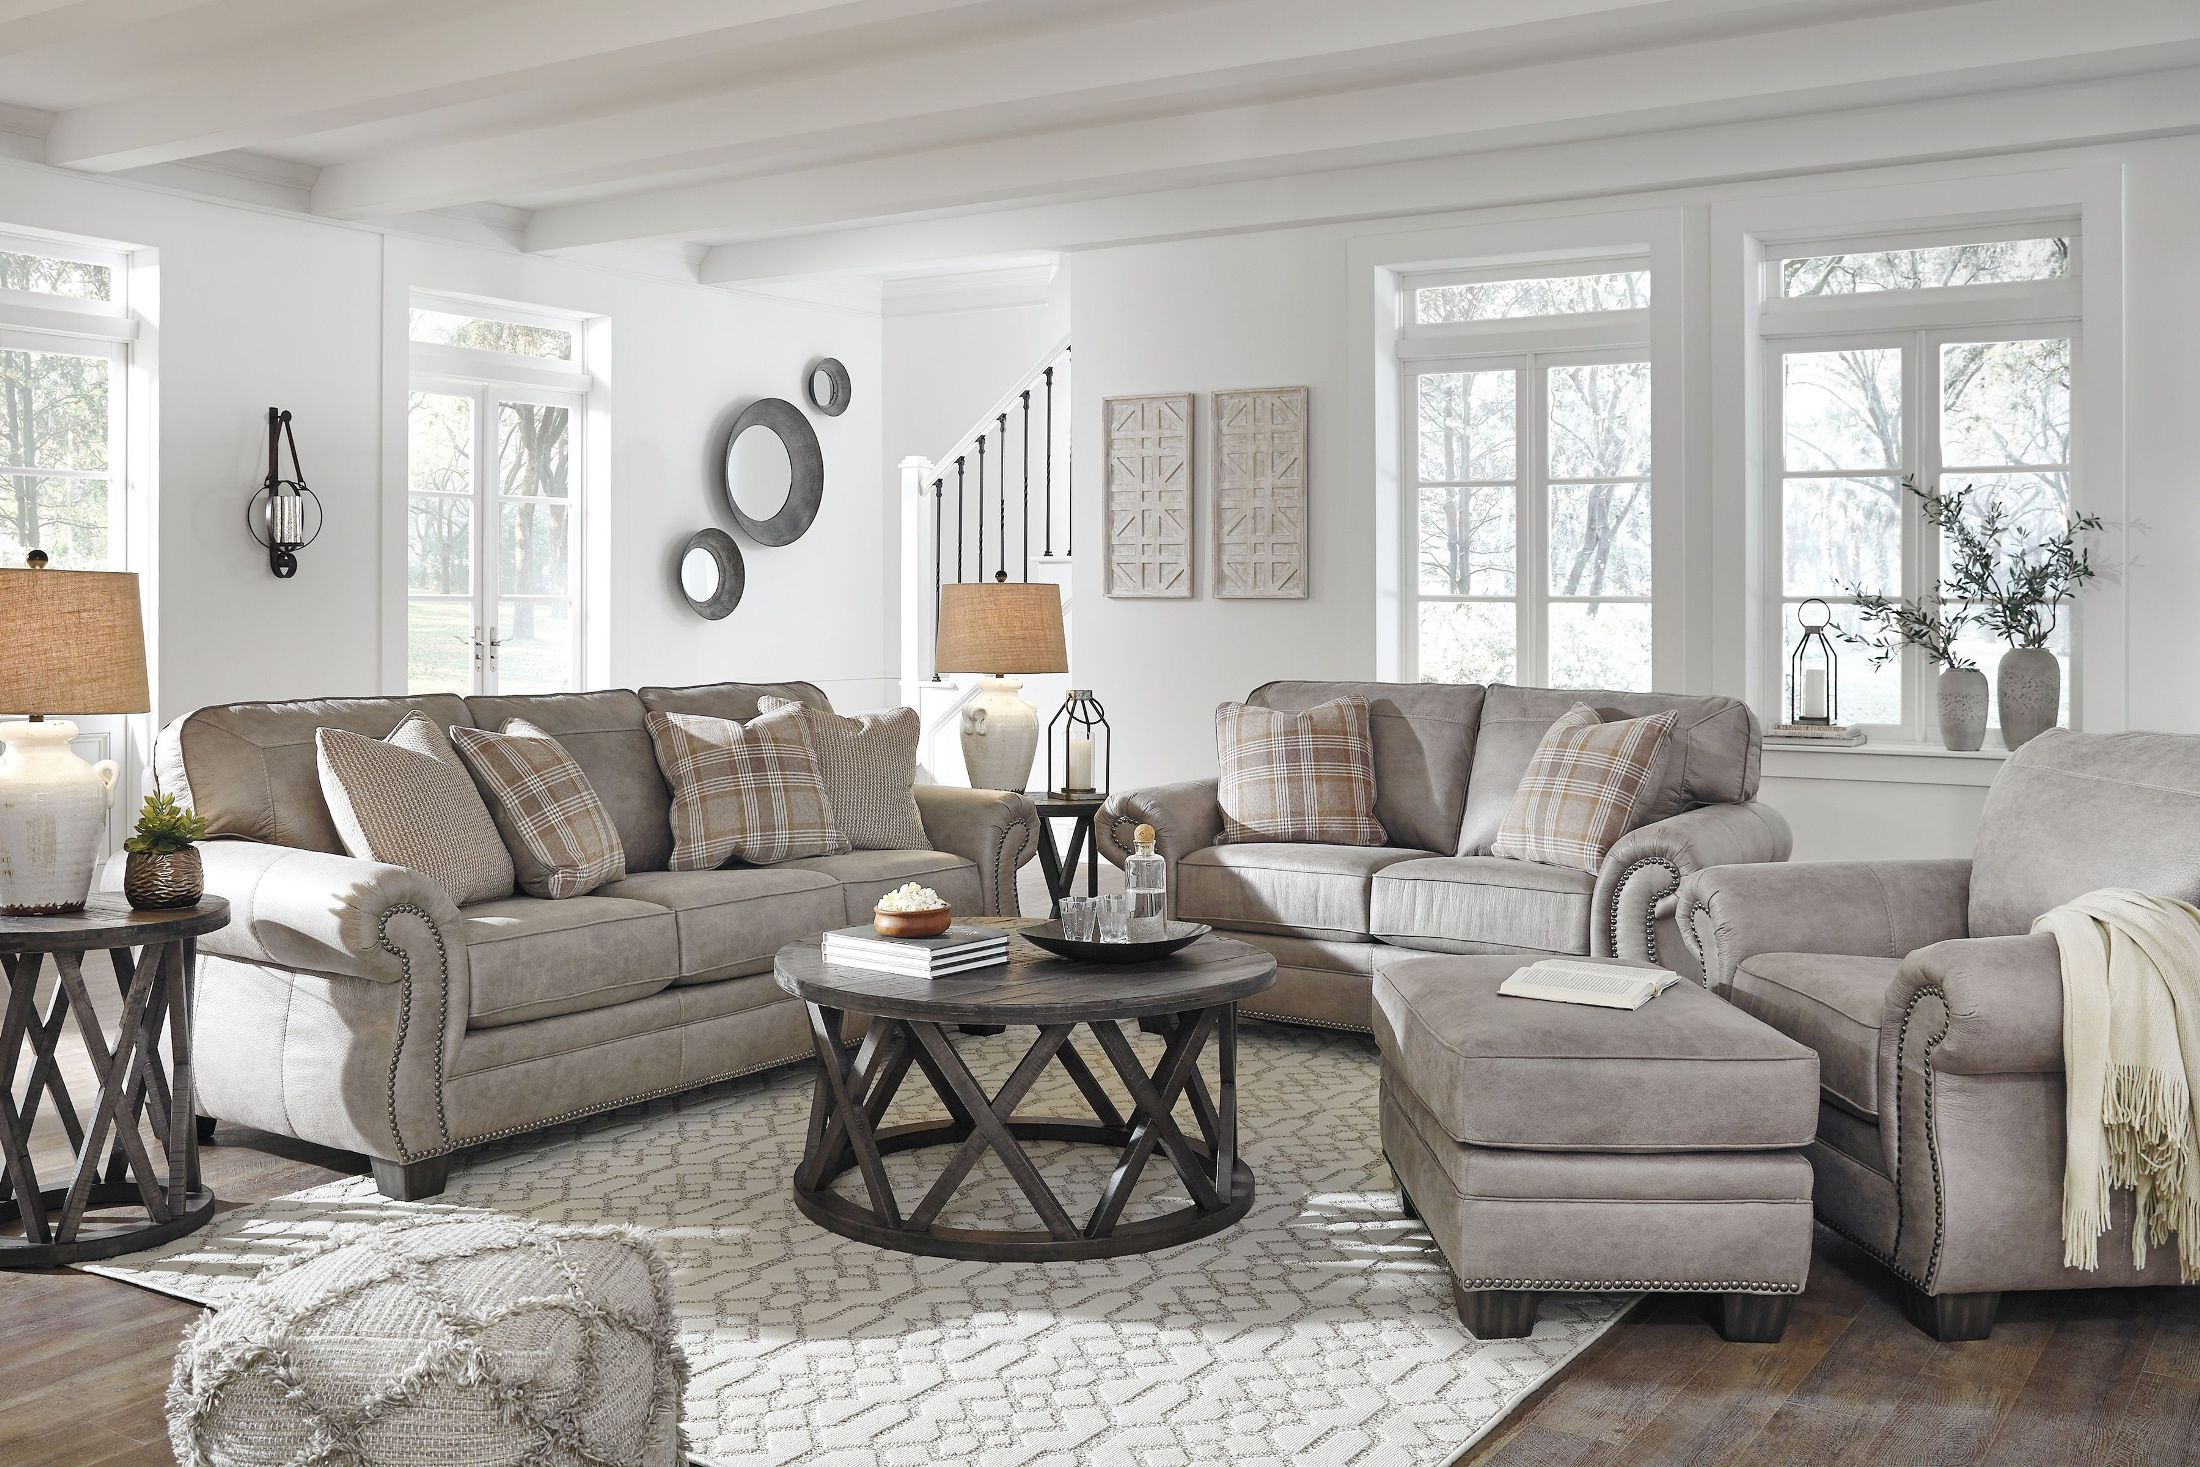 Signature Design Ashley Olsberg Steel Living Room Set Olsberg pertaining to 15 Awesome Designs of How to Makeover Free Living Room Set